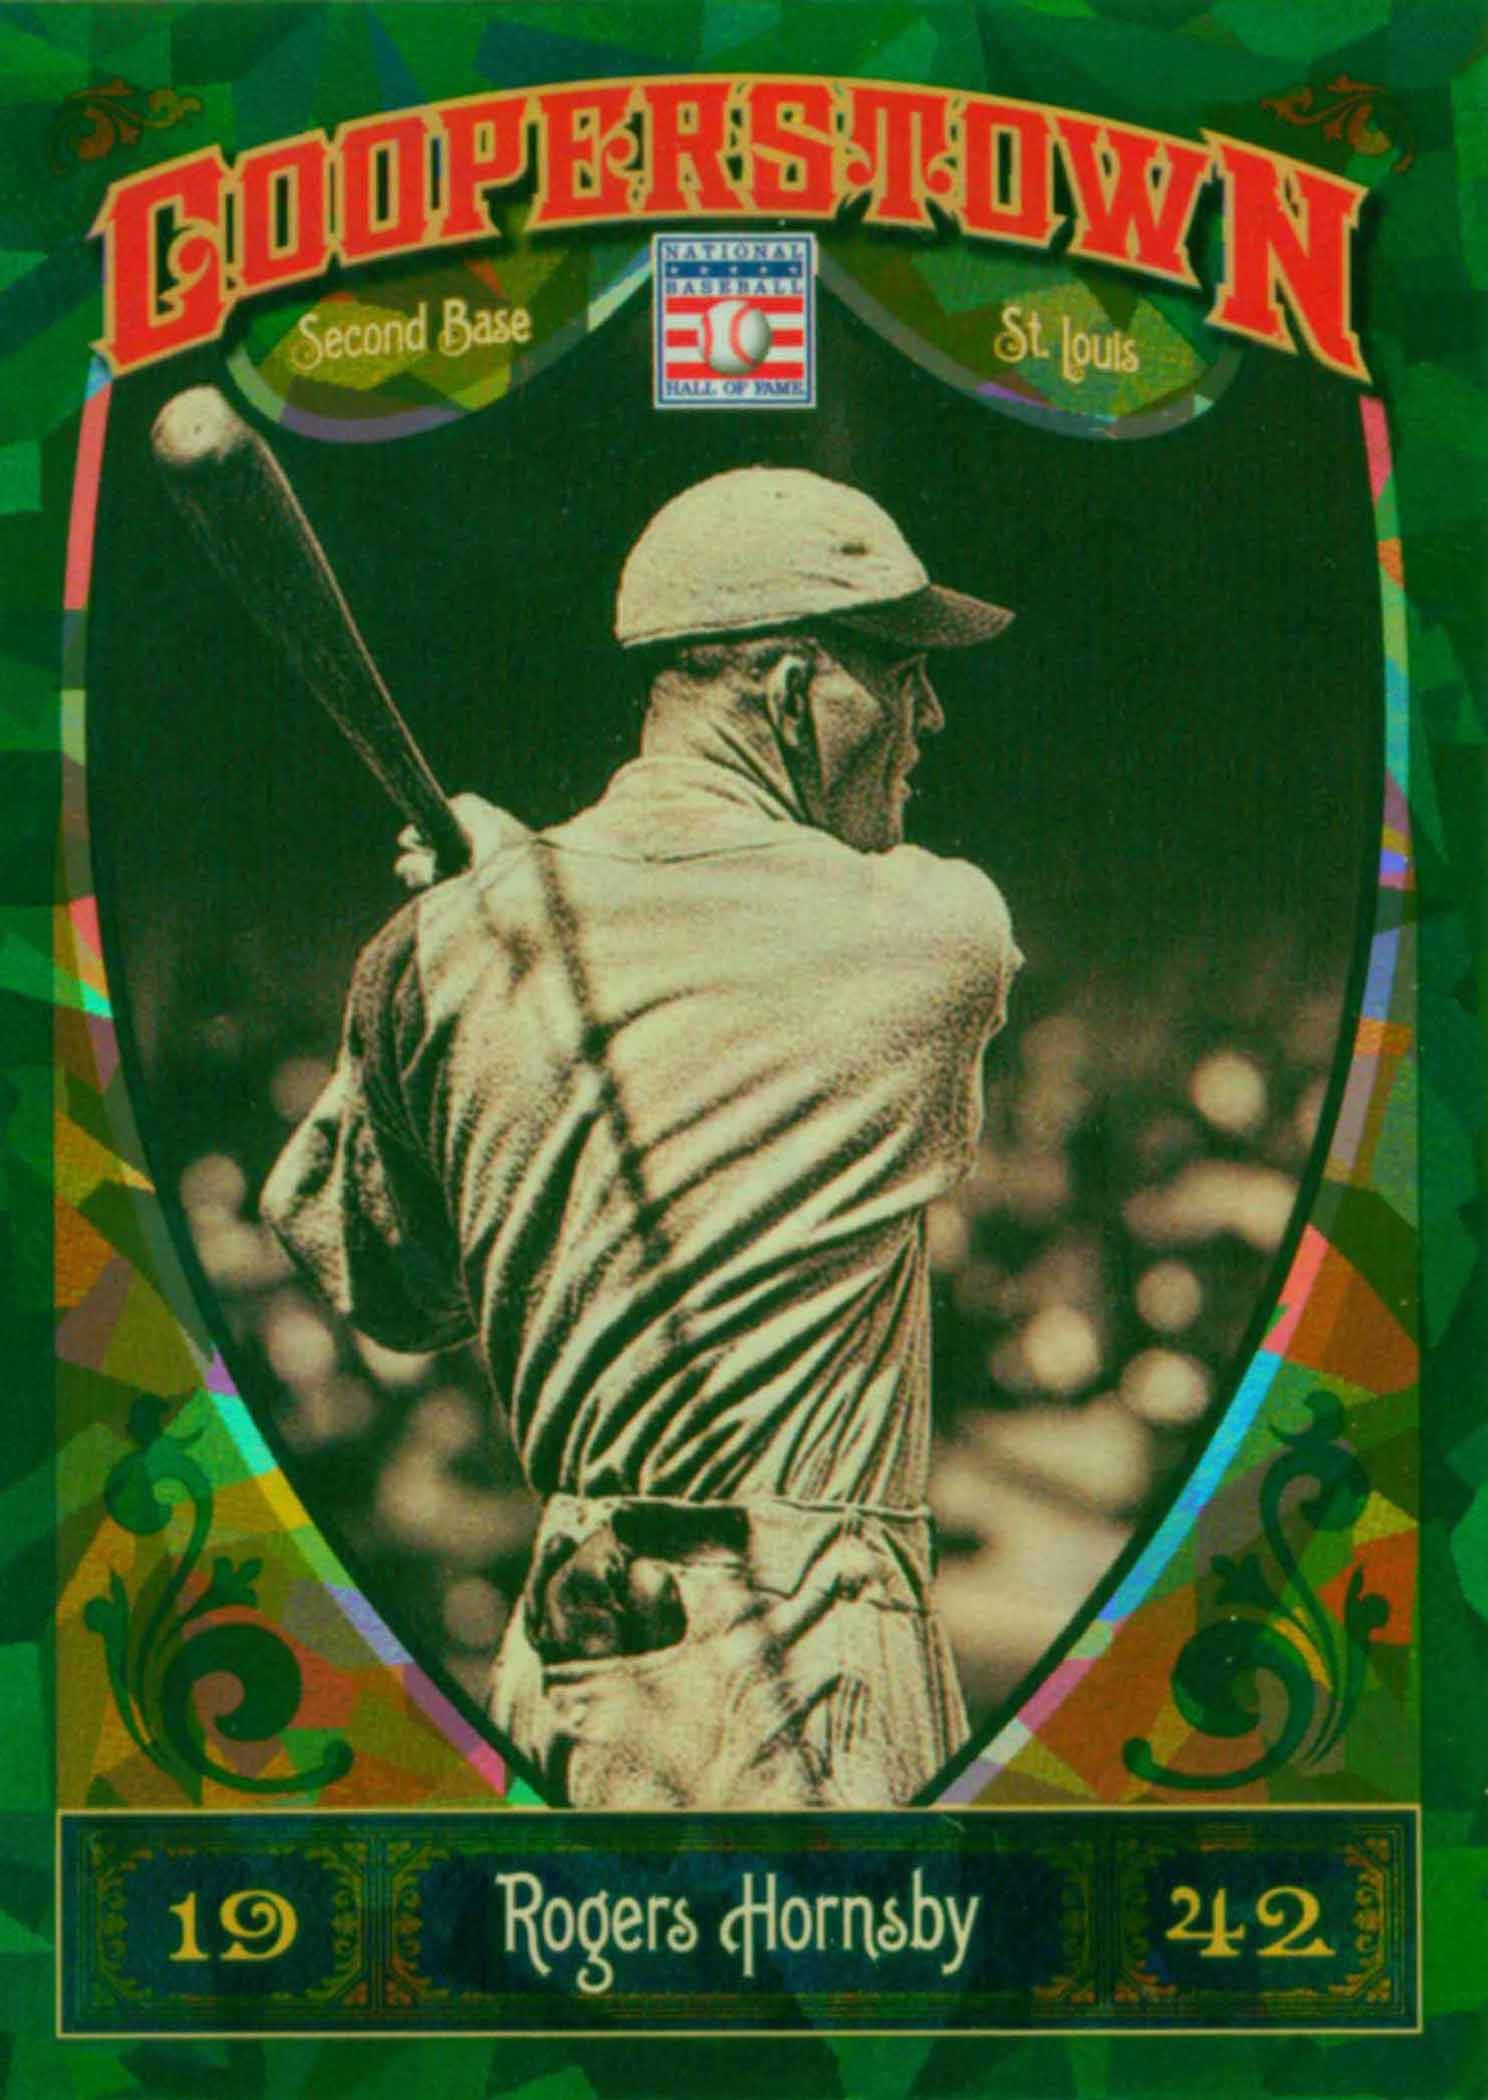 2013 Panini Cooperstown Green Crystal